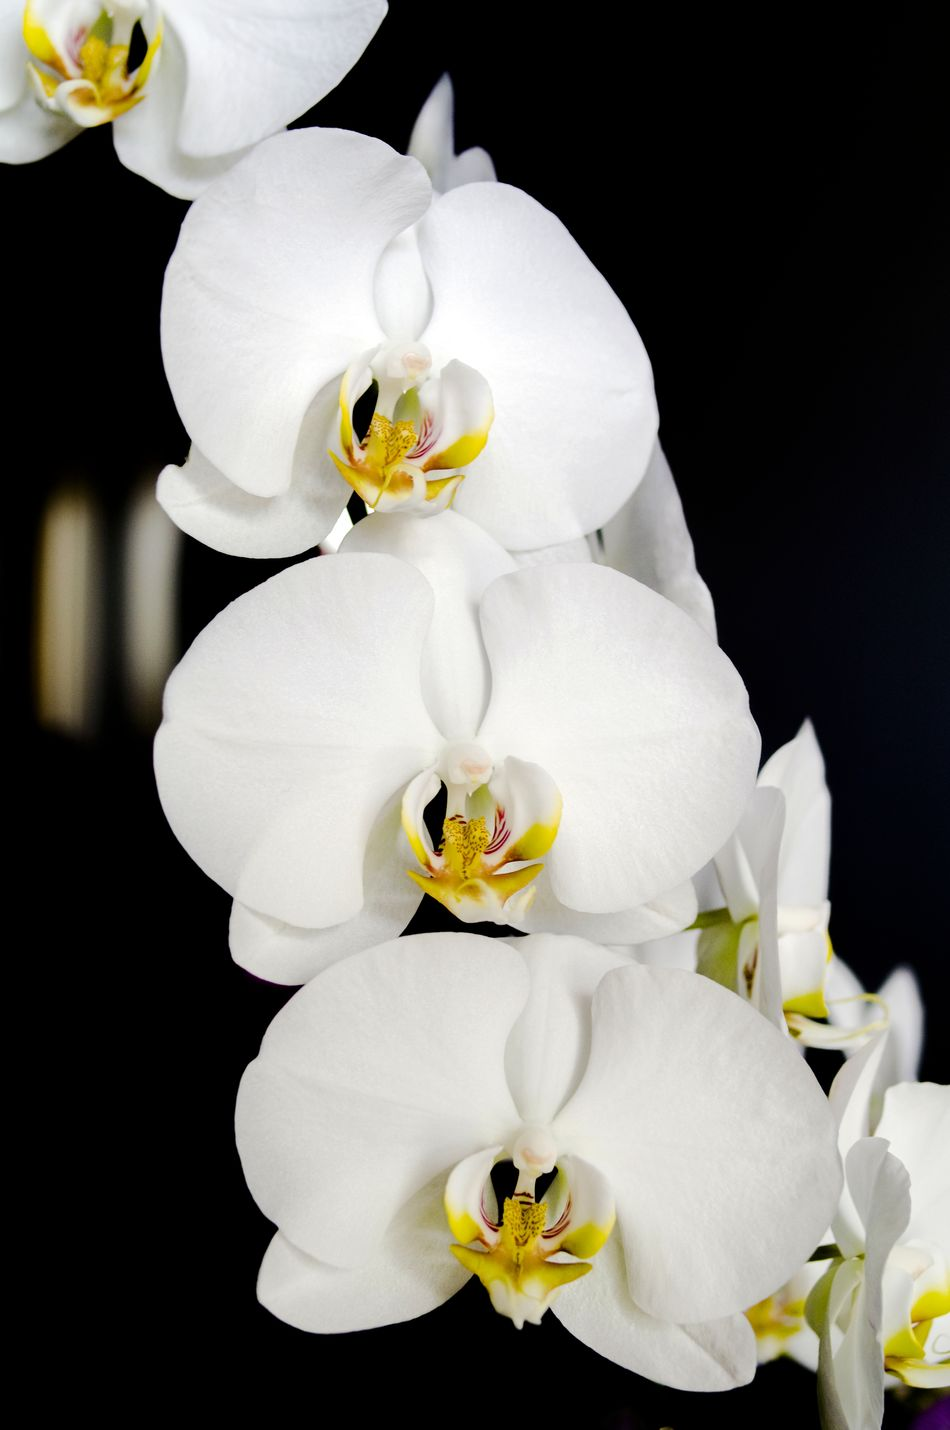 Beauty In Nature Black Background Blooming Close-up EyeEm Best Shots EyeEm Gallery EyeEm Nature Lover Flower Flower Head Fragility Freshness Growth Nature No People Orchid Orchid Blossoms Orchids Petal White Color